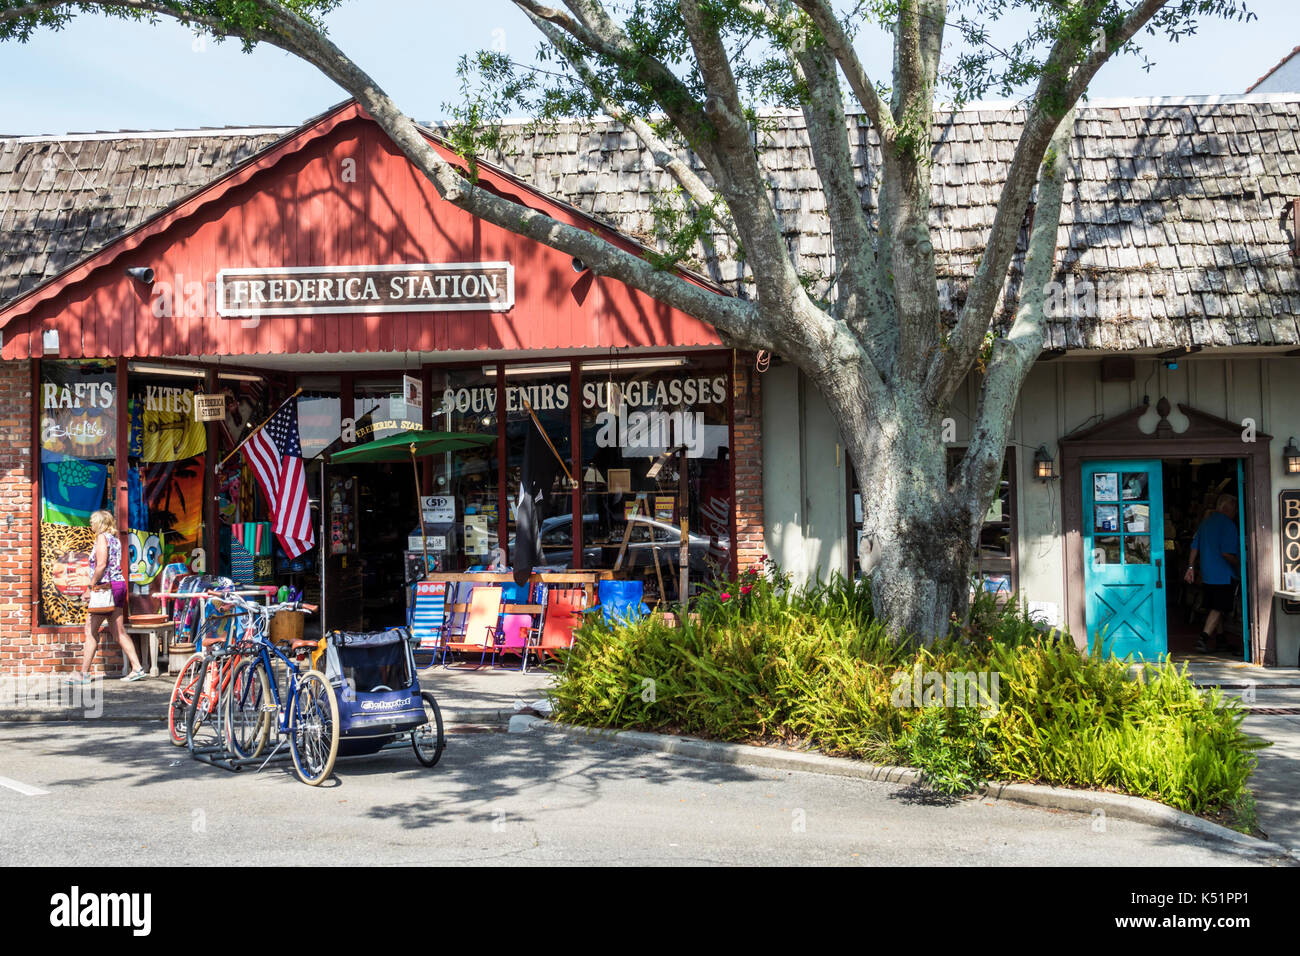 St. Saint Simons Island Georgia Pier Village District shopping store Frederica Station exterior bicycle - Stock Image